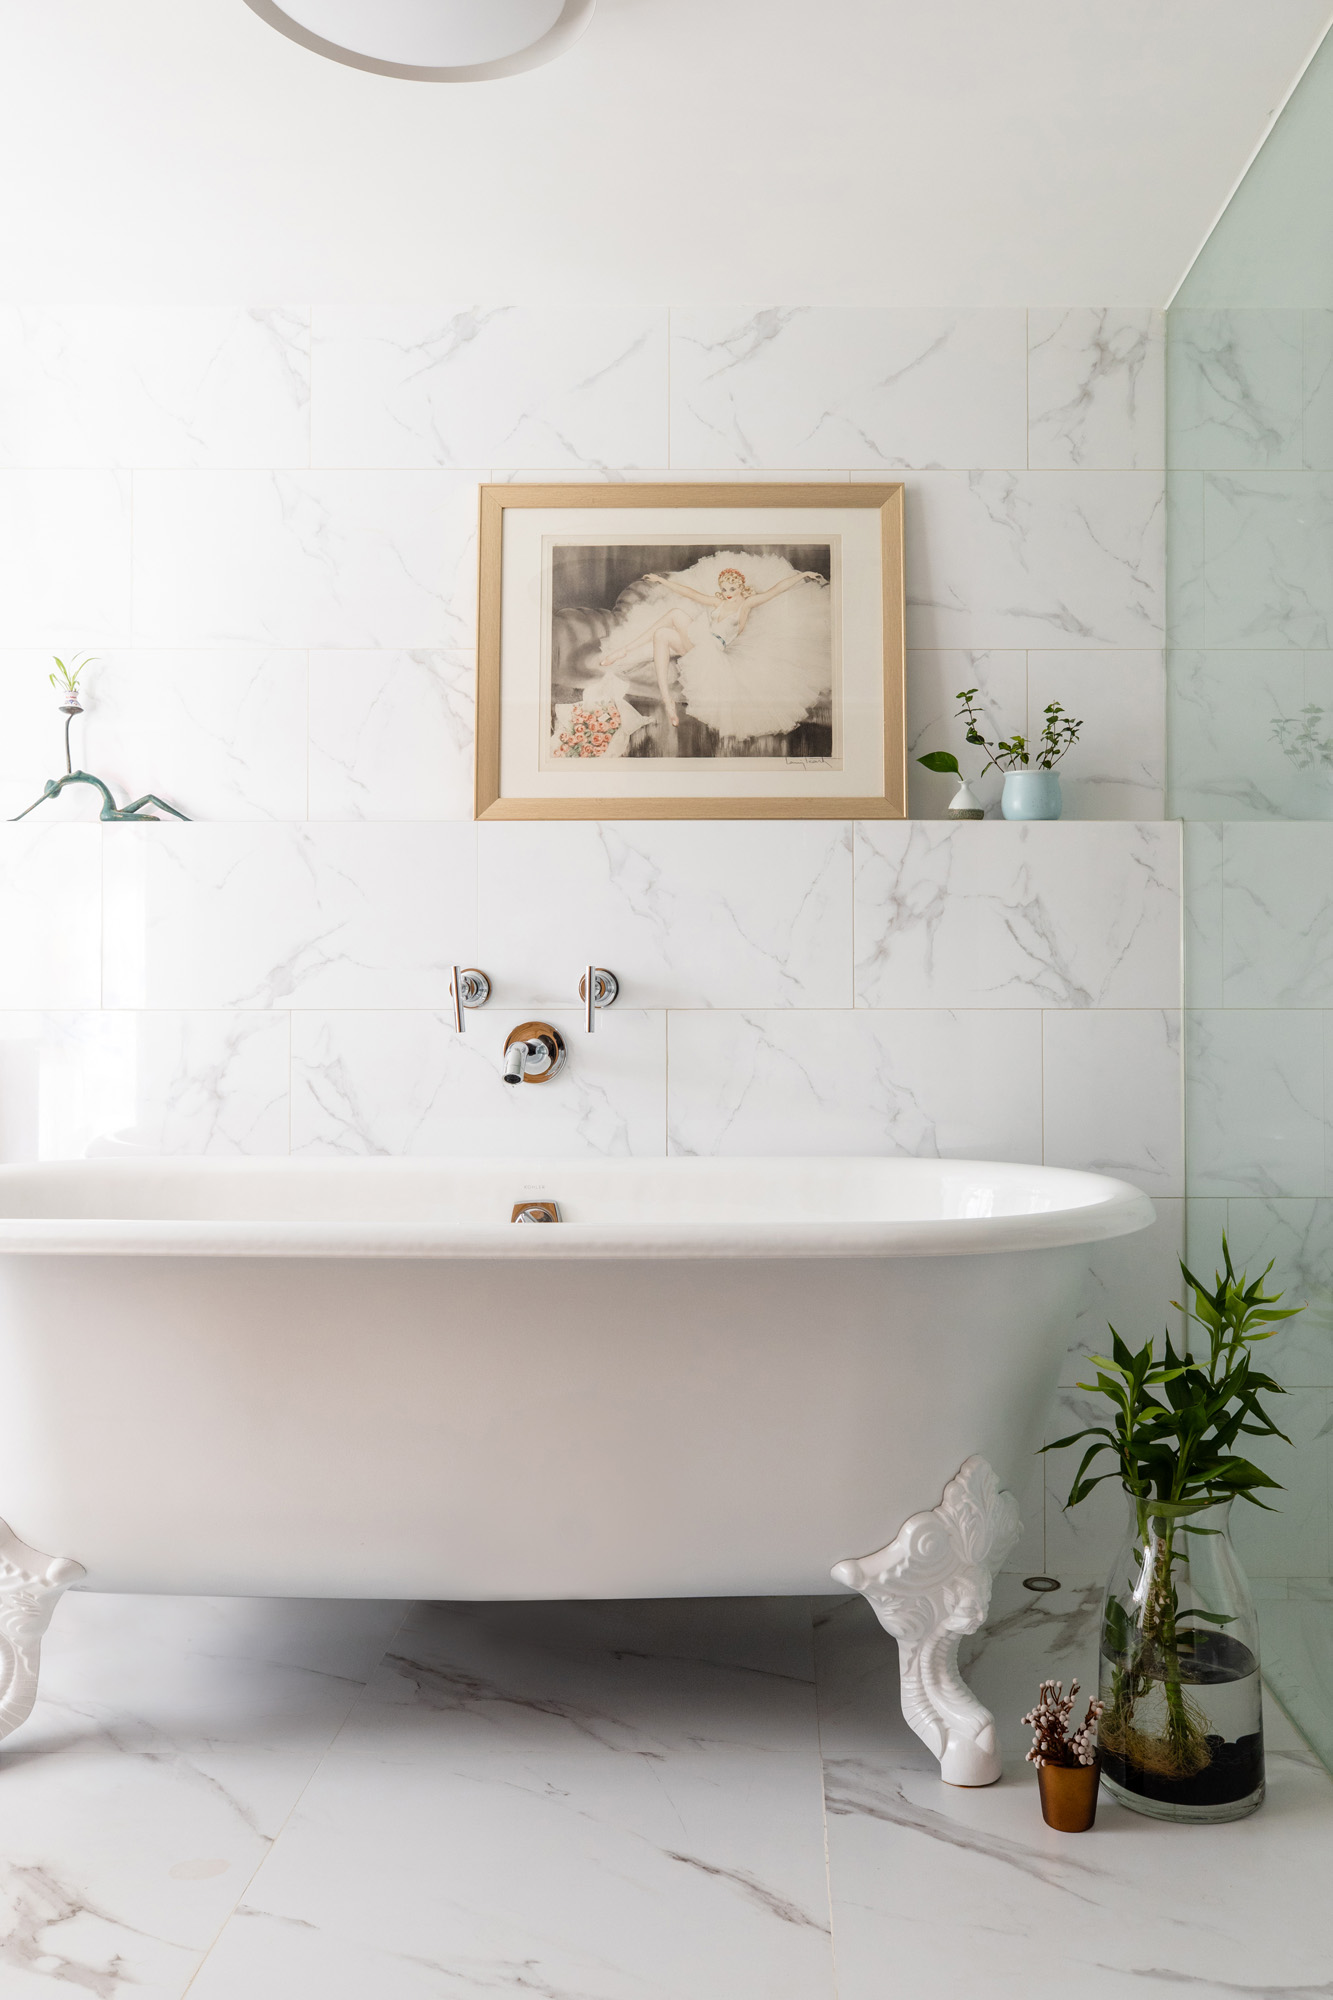 Clawfoot tub bathroom details • Home Interior Design Photos • Tracy Wong Photography